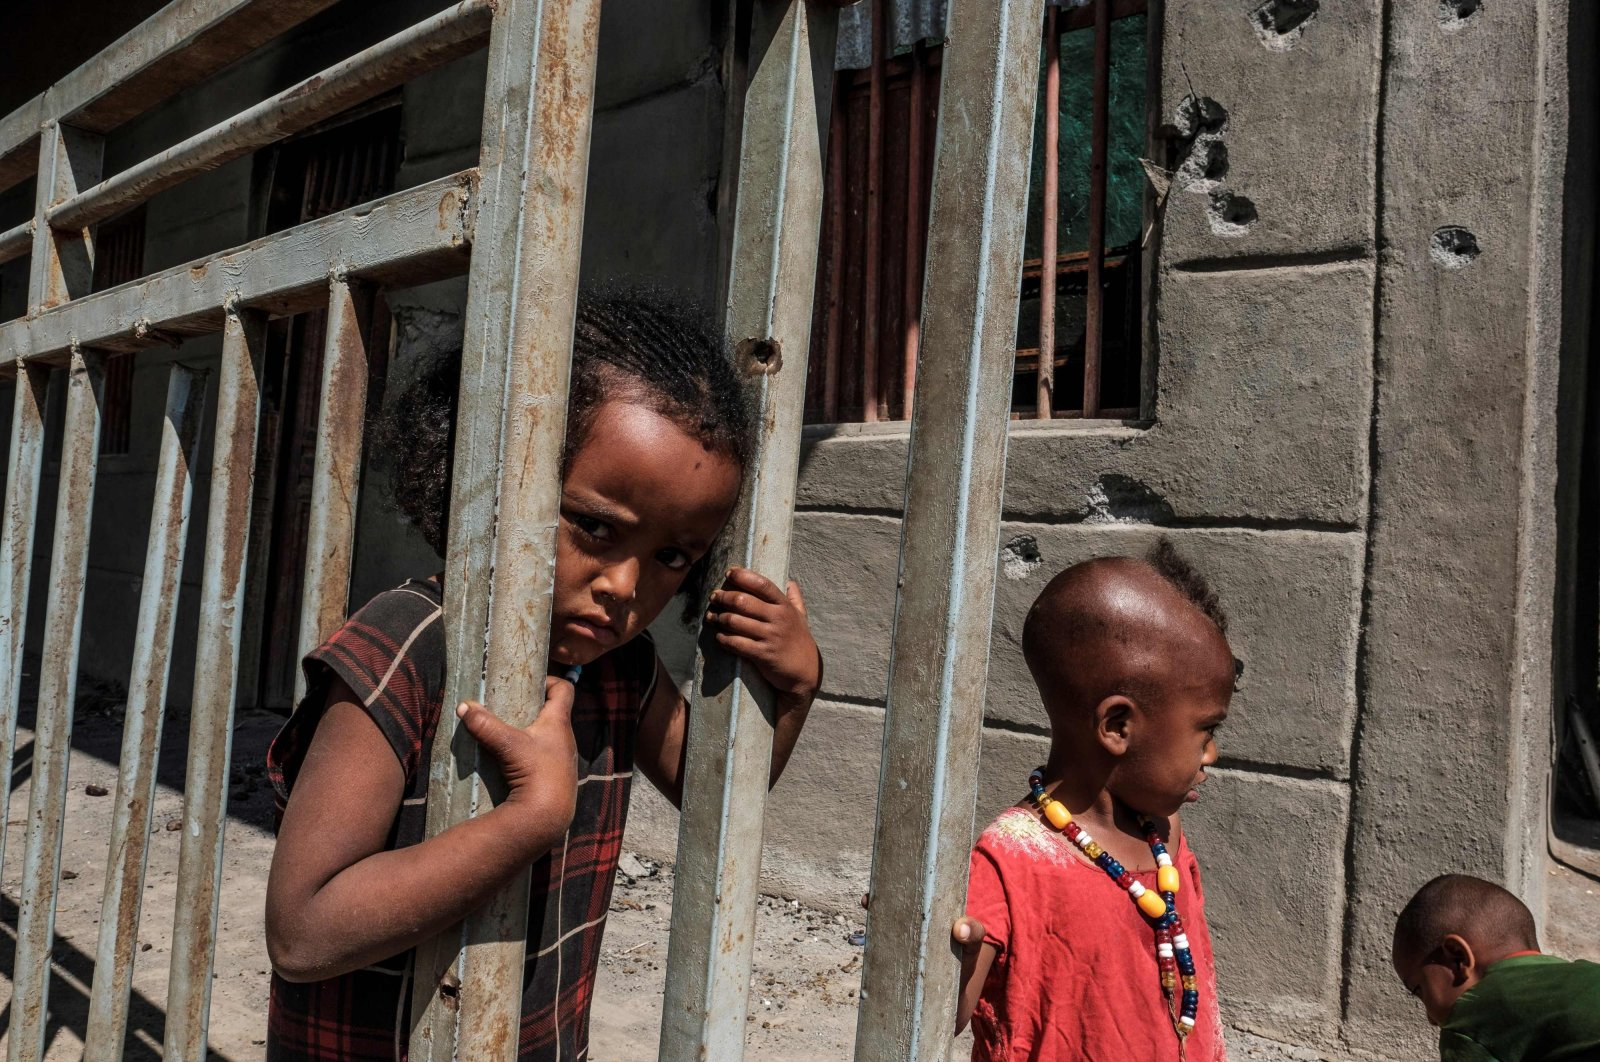 Children play in front of a store damaged by bullets in the village of Bisober, in Ethiopia's Tigray region on Dec. 9, 2020. (AFP Photo)